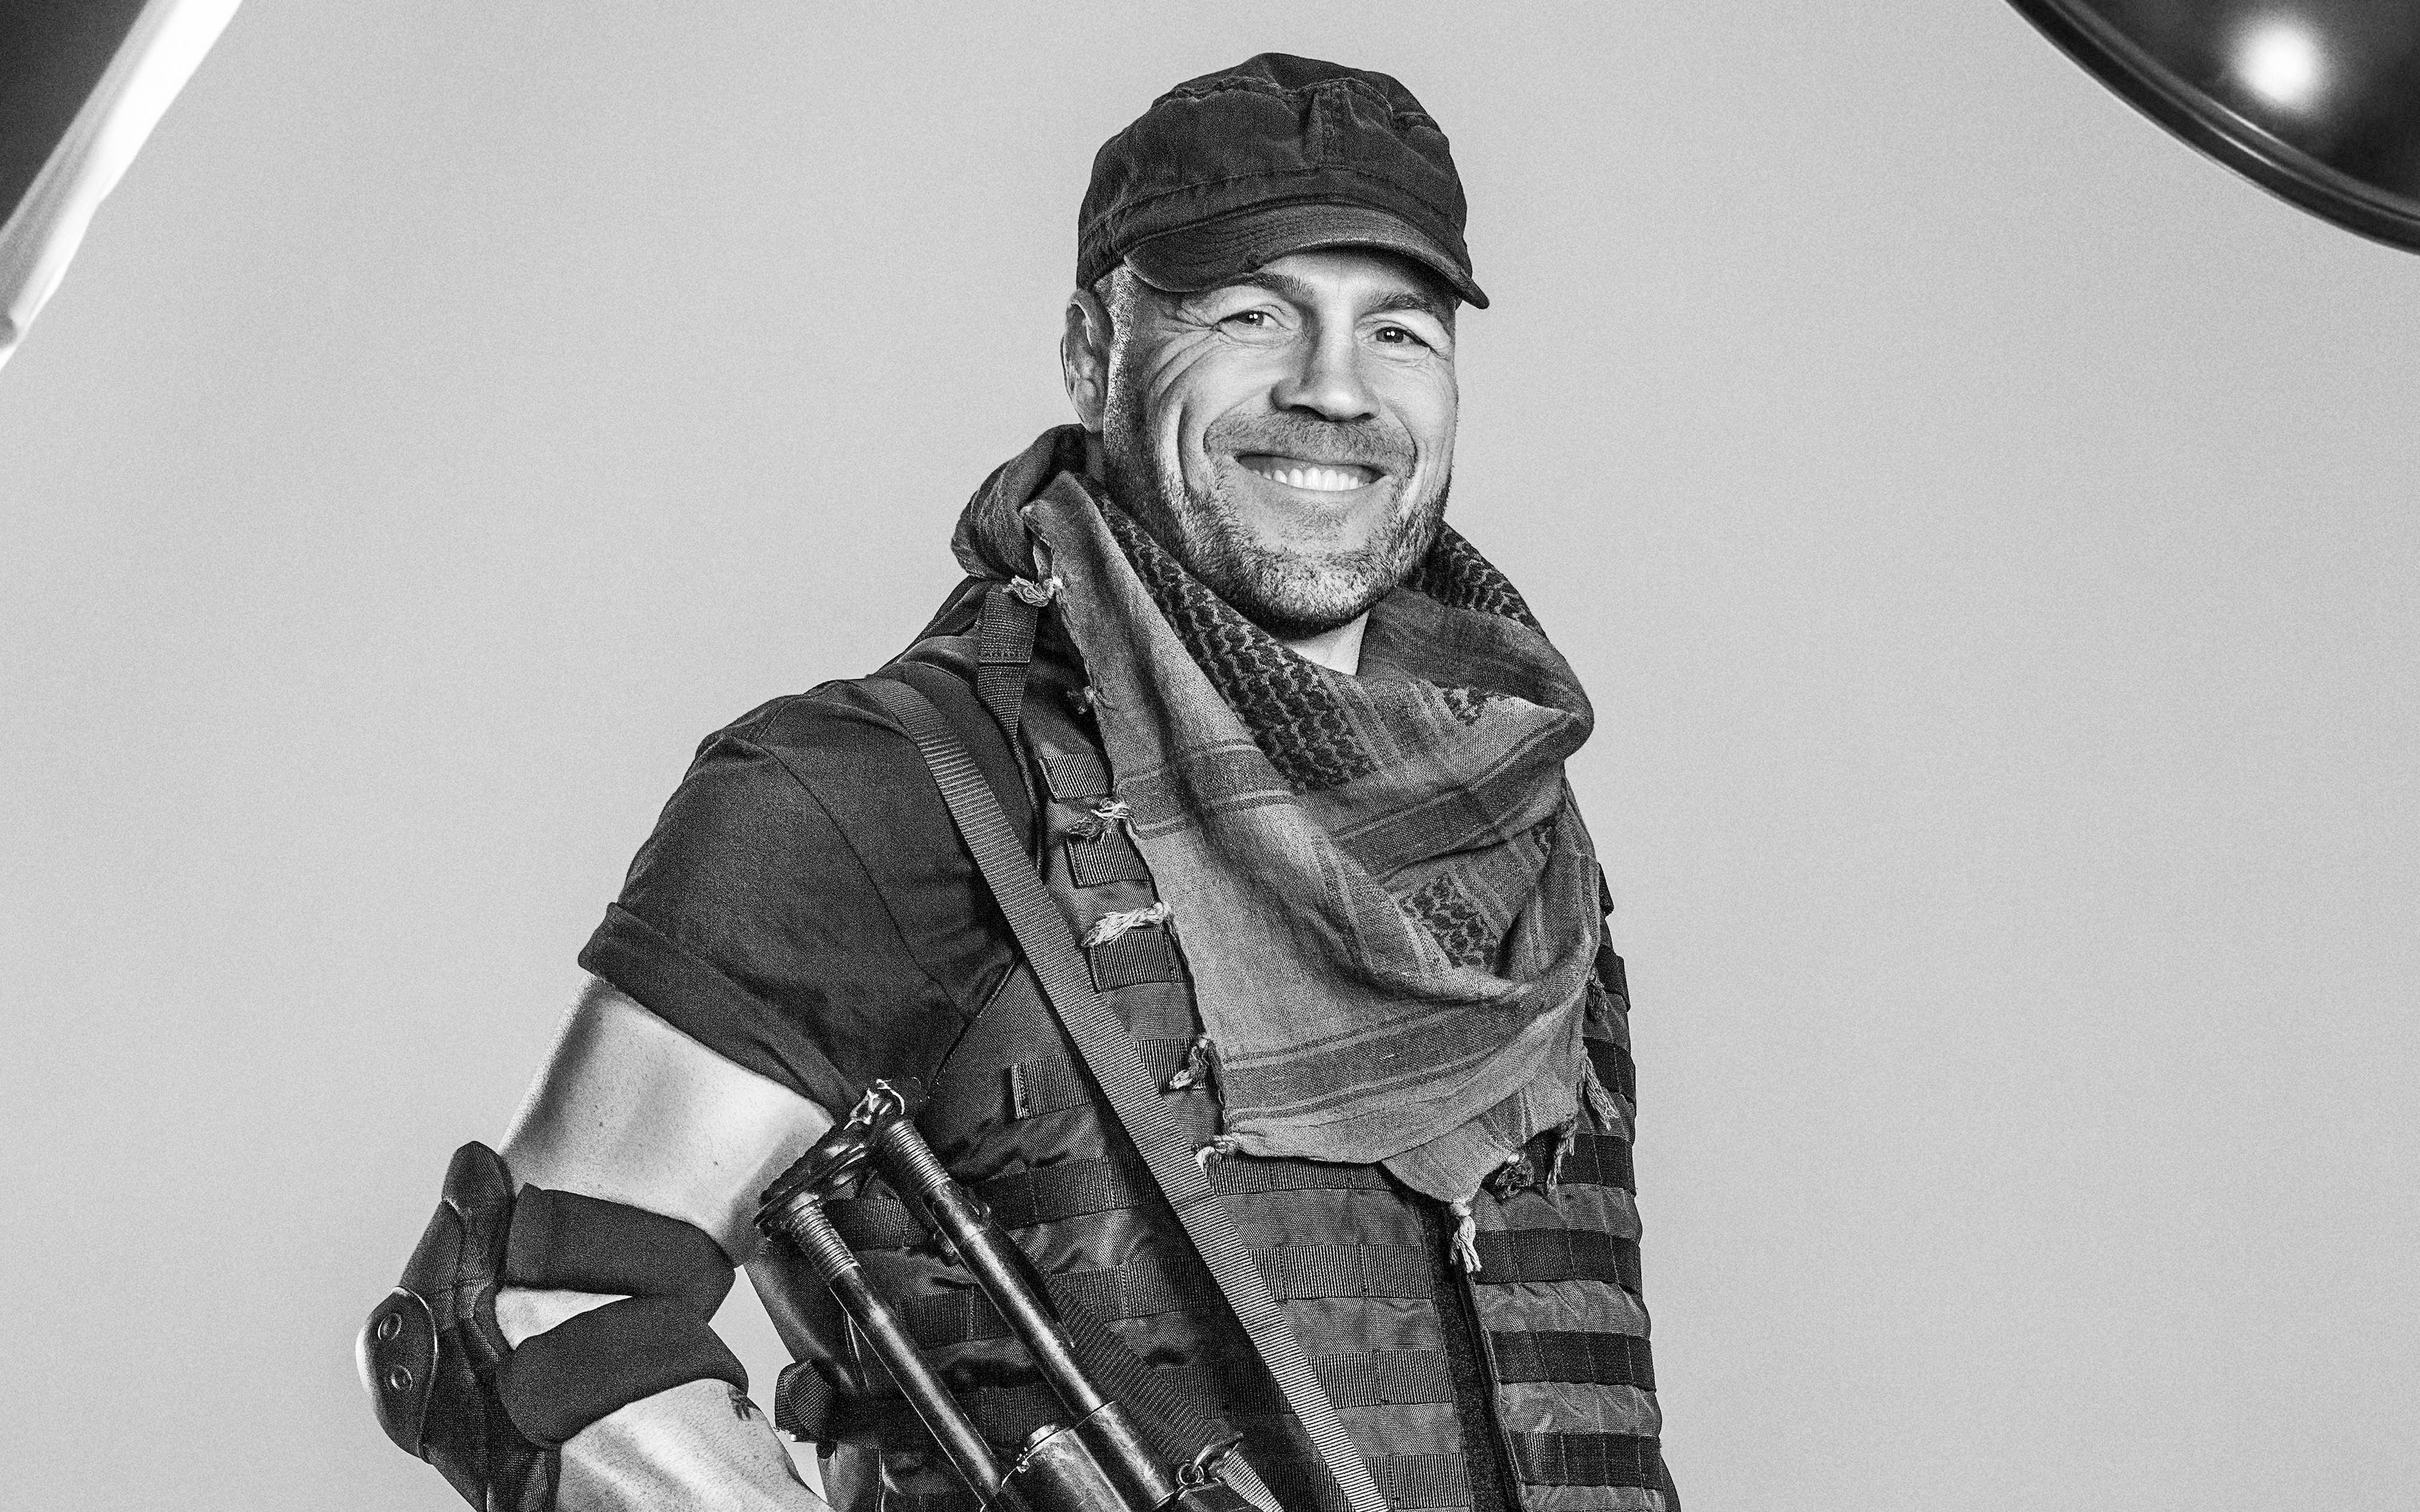 Toll Road (Randy Couture) - Expendables 3